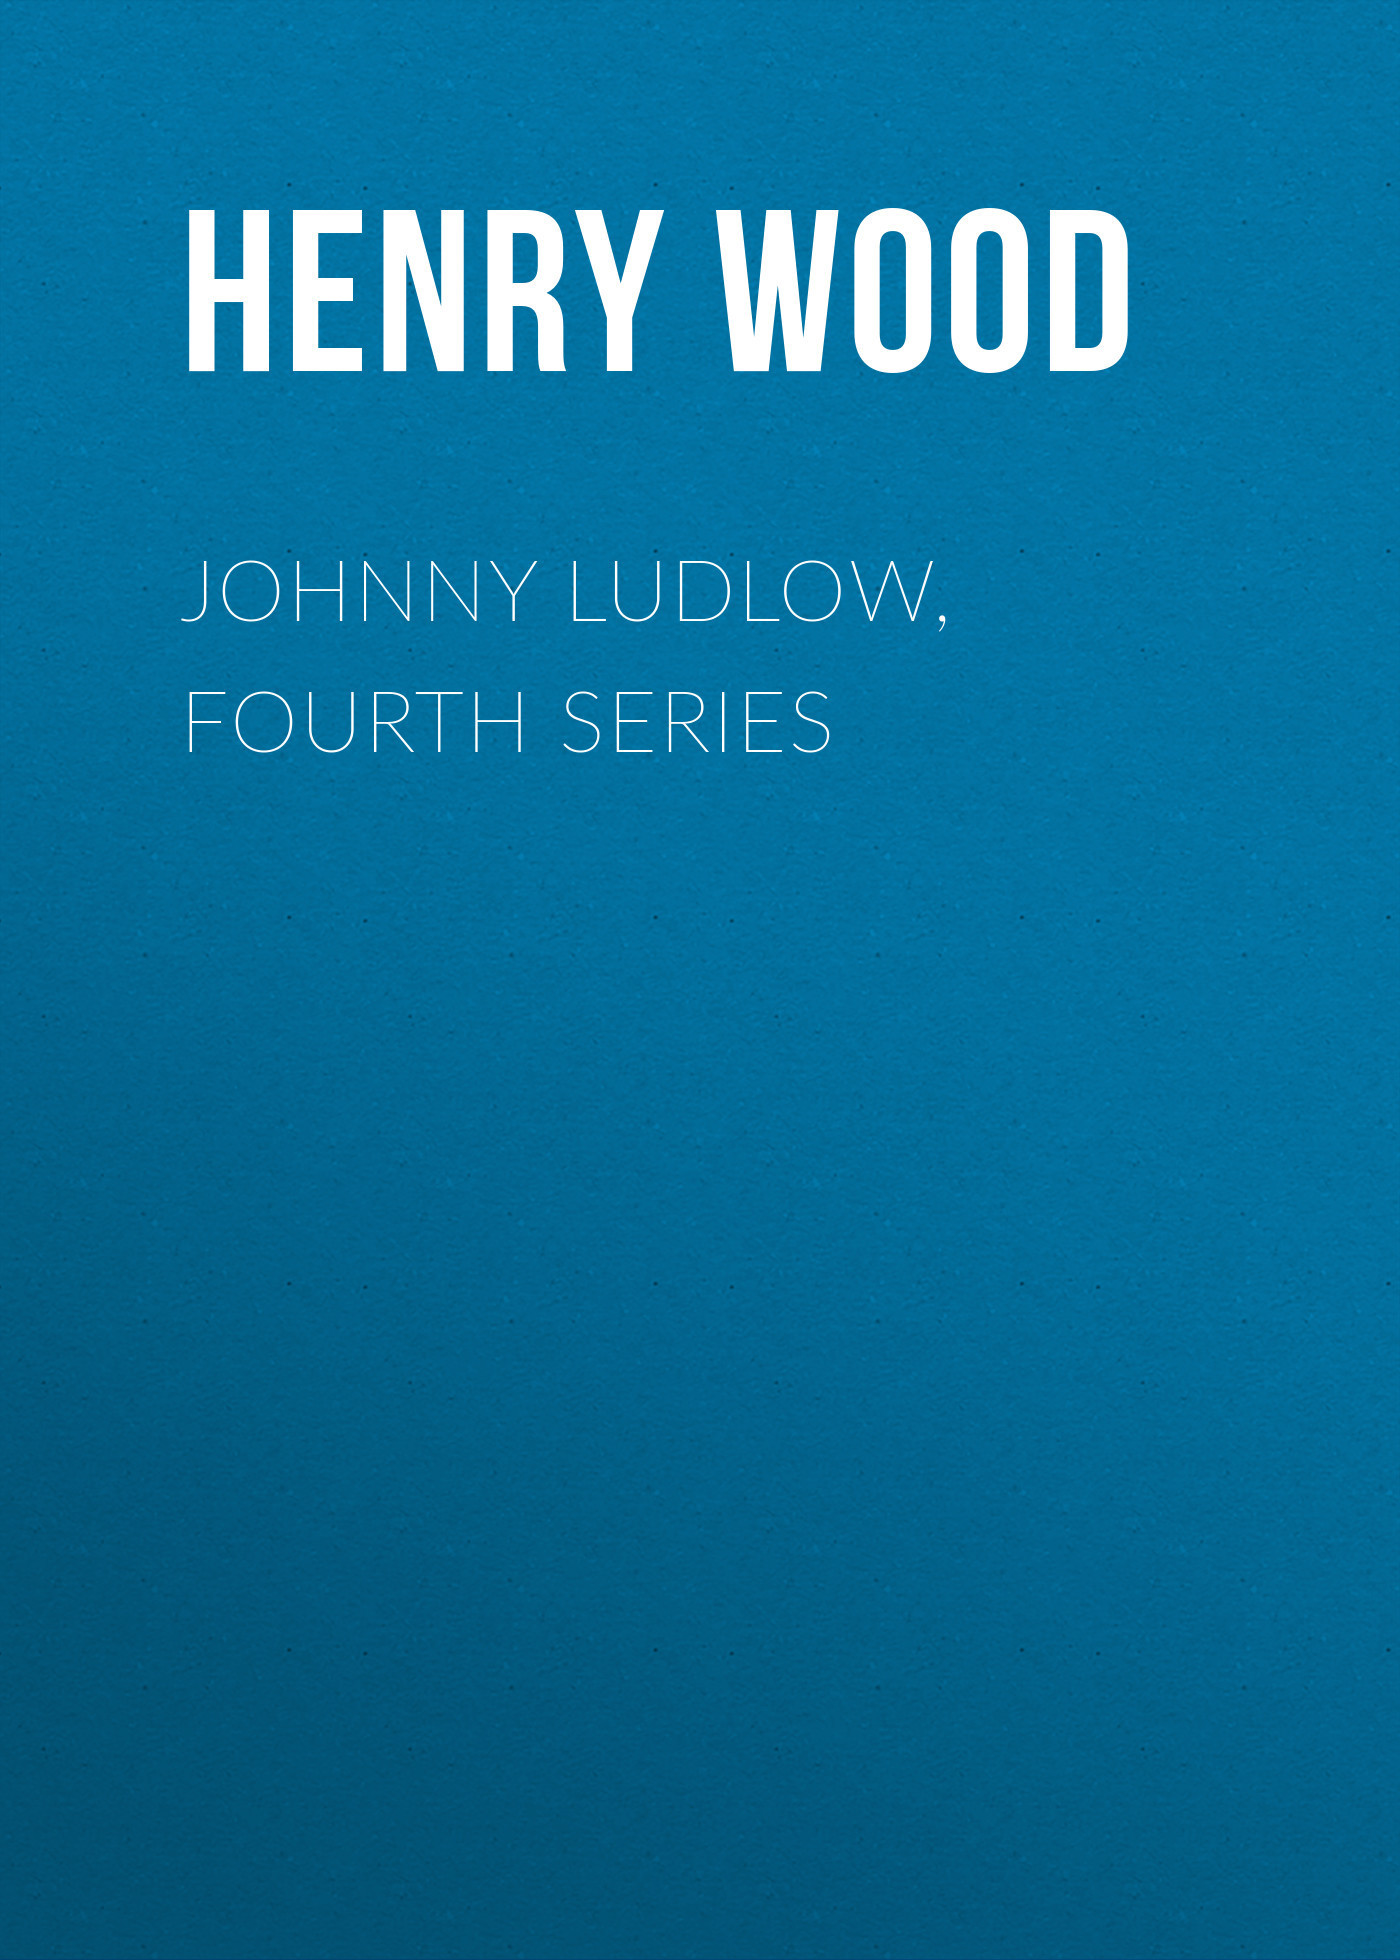 Henry Wood Johnny Ludlow, Fourth Series henry wood trevlyn hold